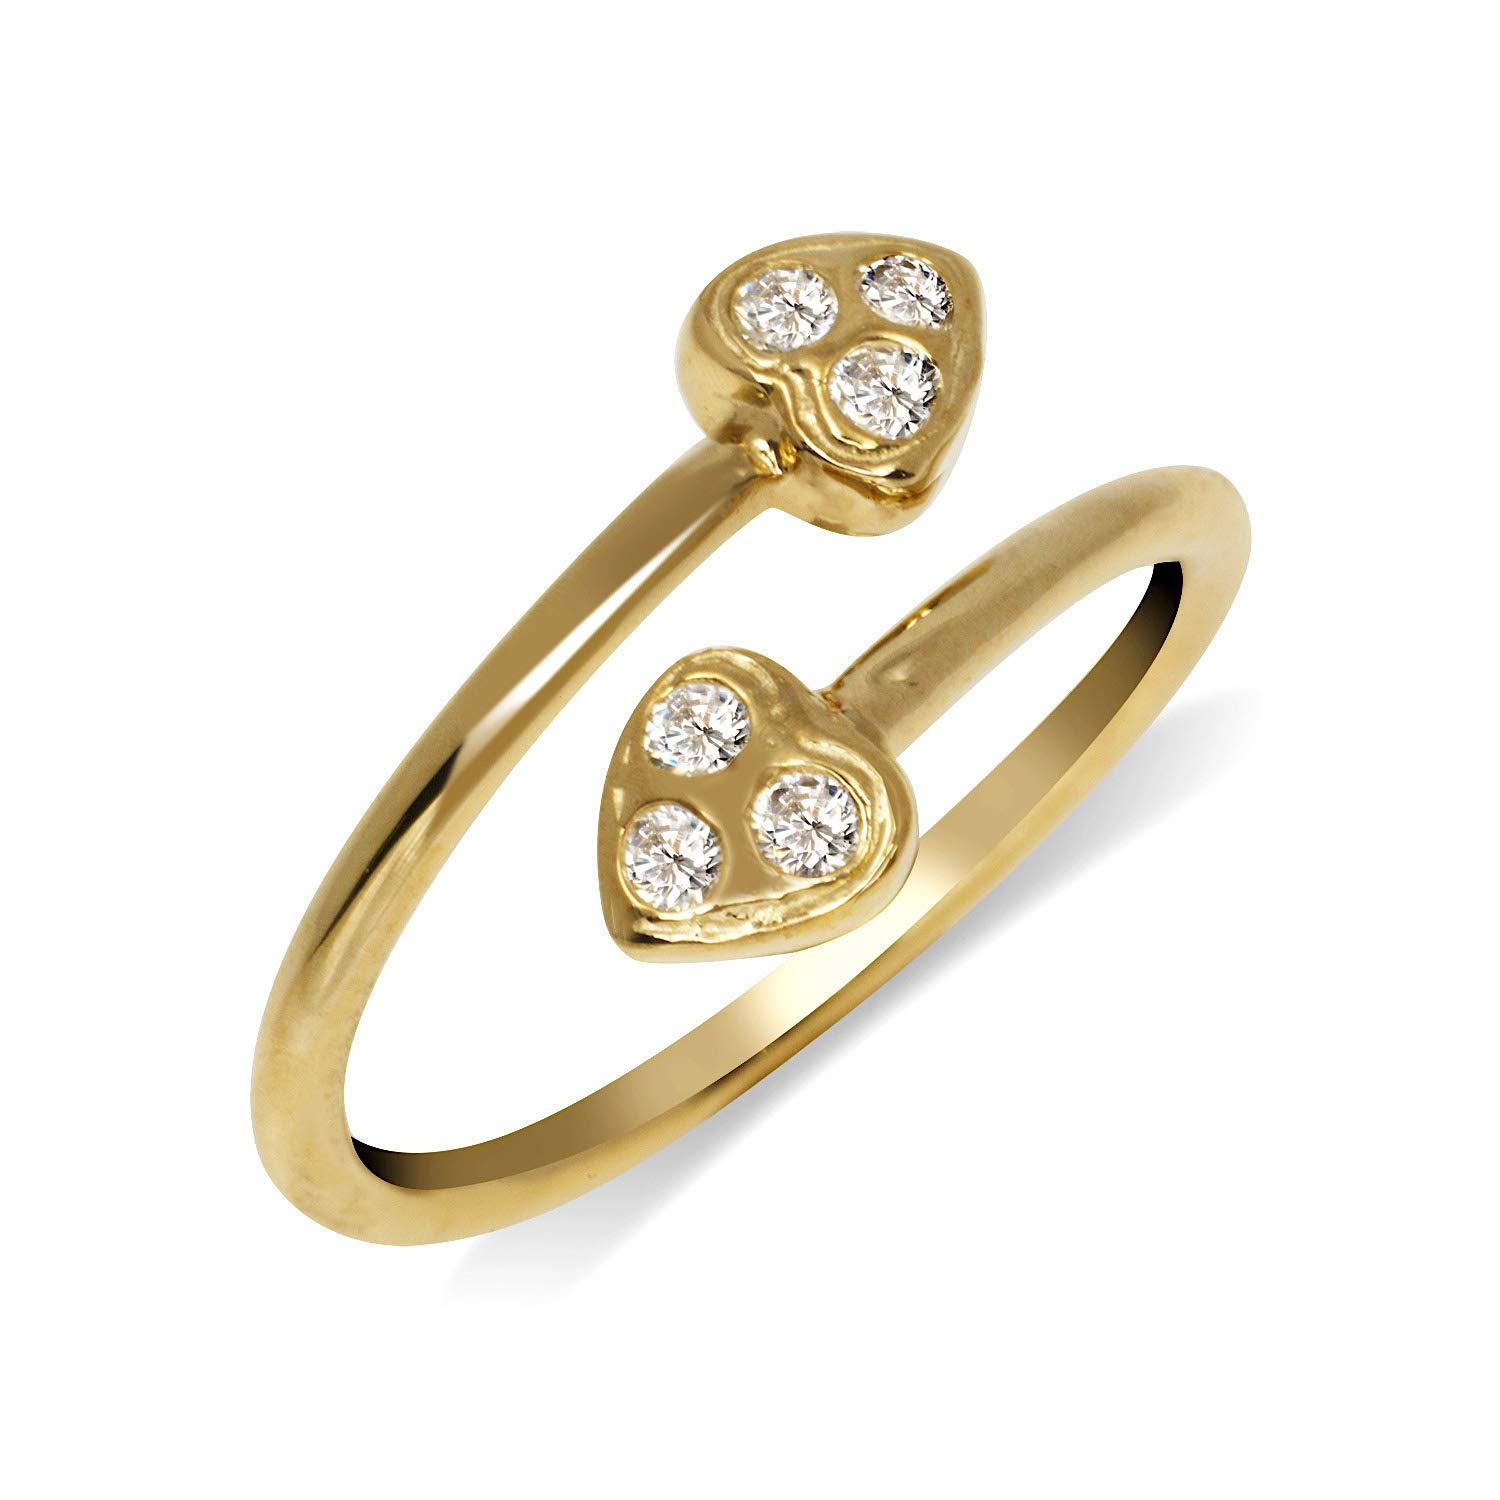 10mmx15mm JewelryWeb Solid 10K Yellow or White Gold Small Heart Bypass Adjustable Cubic Zirconia Toe Ring